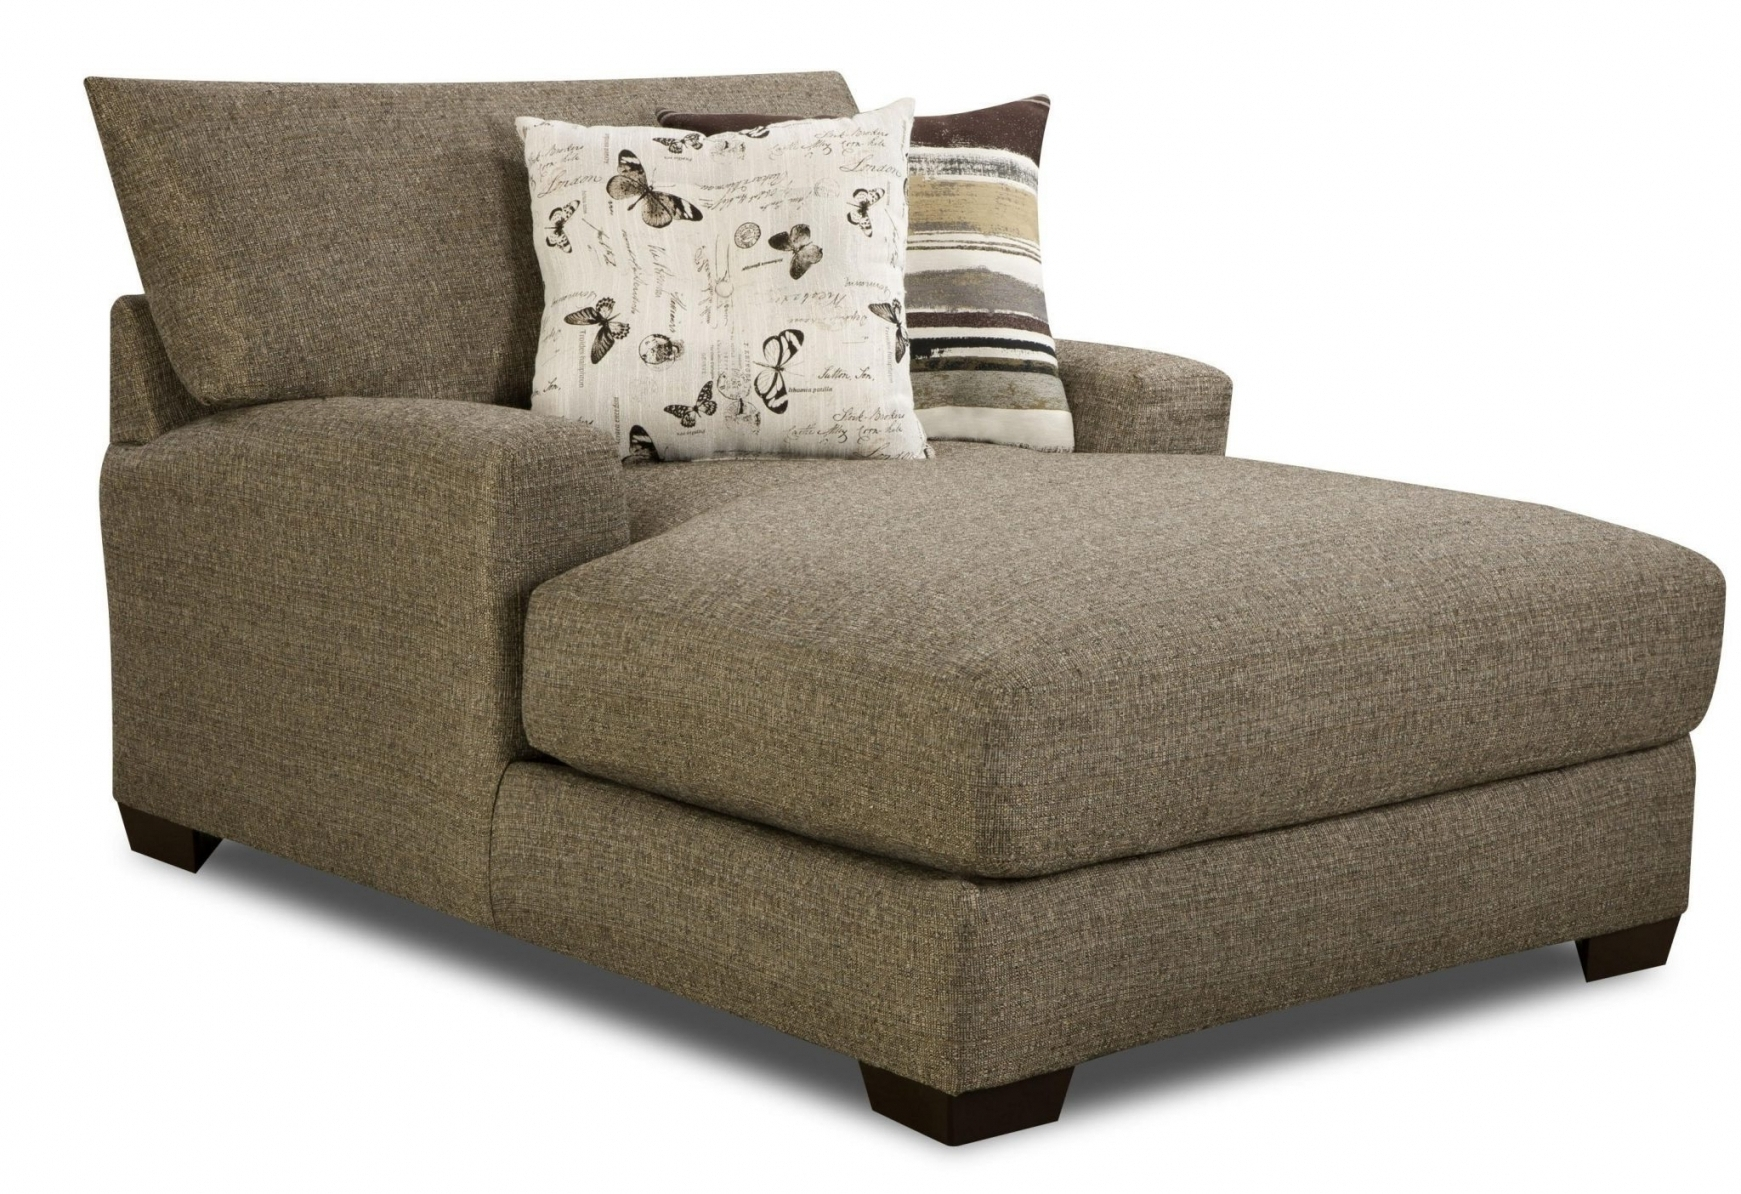 Indoor Chaise Lounge Chairs In Most Popular Chaise Lounge Chair With Arms (View 4 of 15)